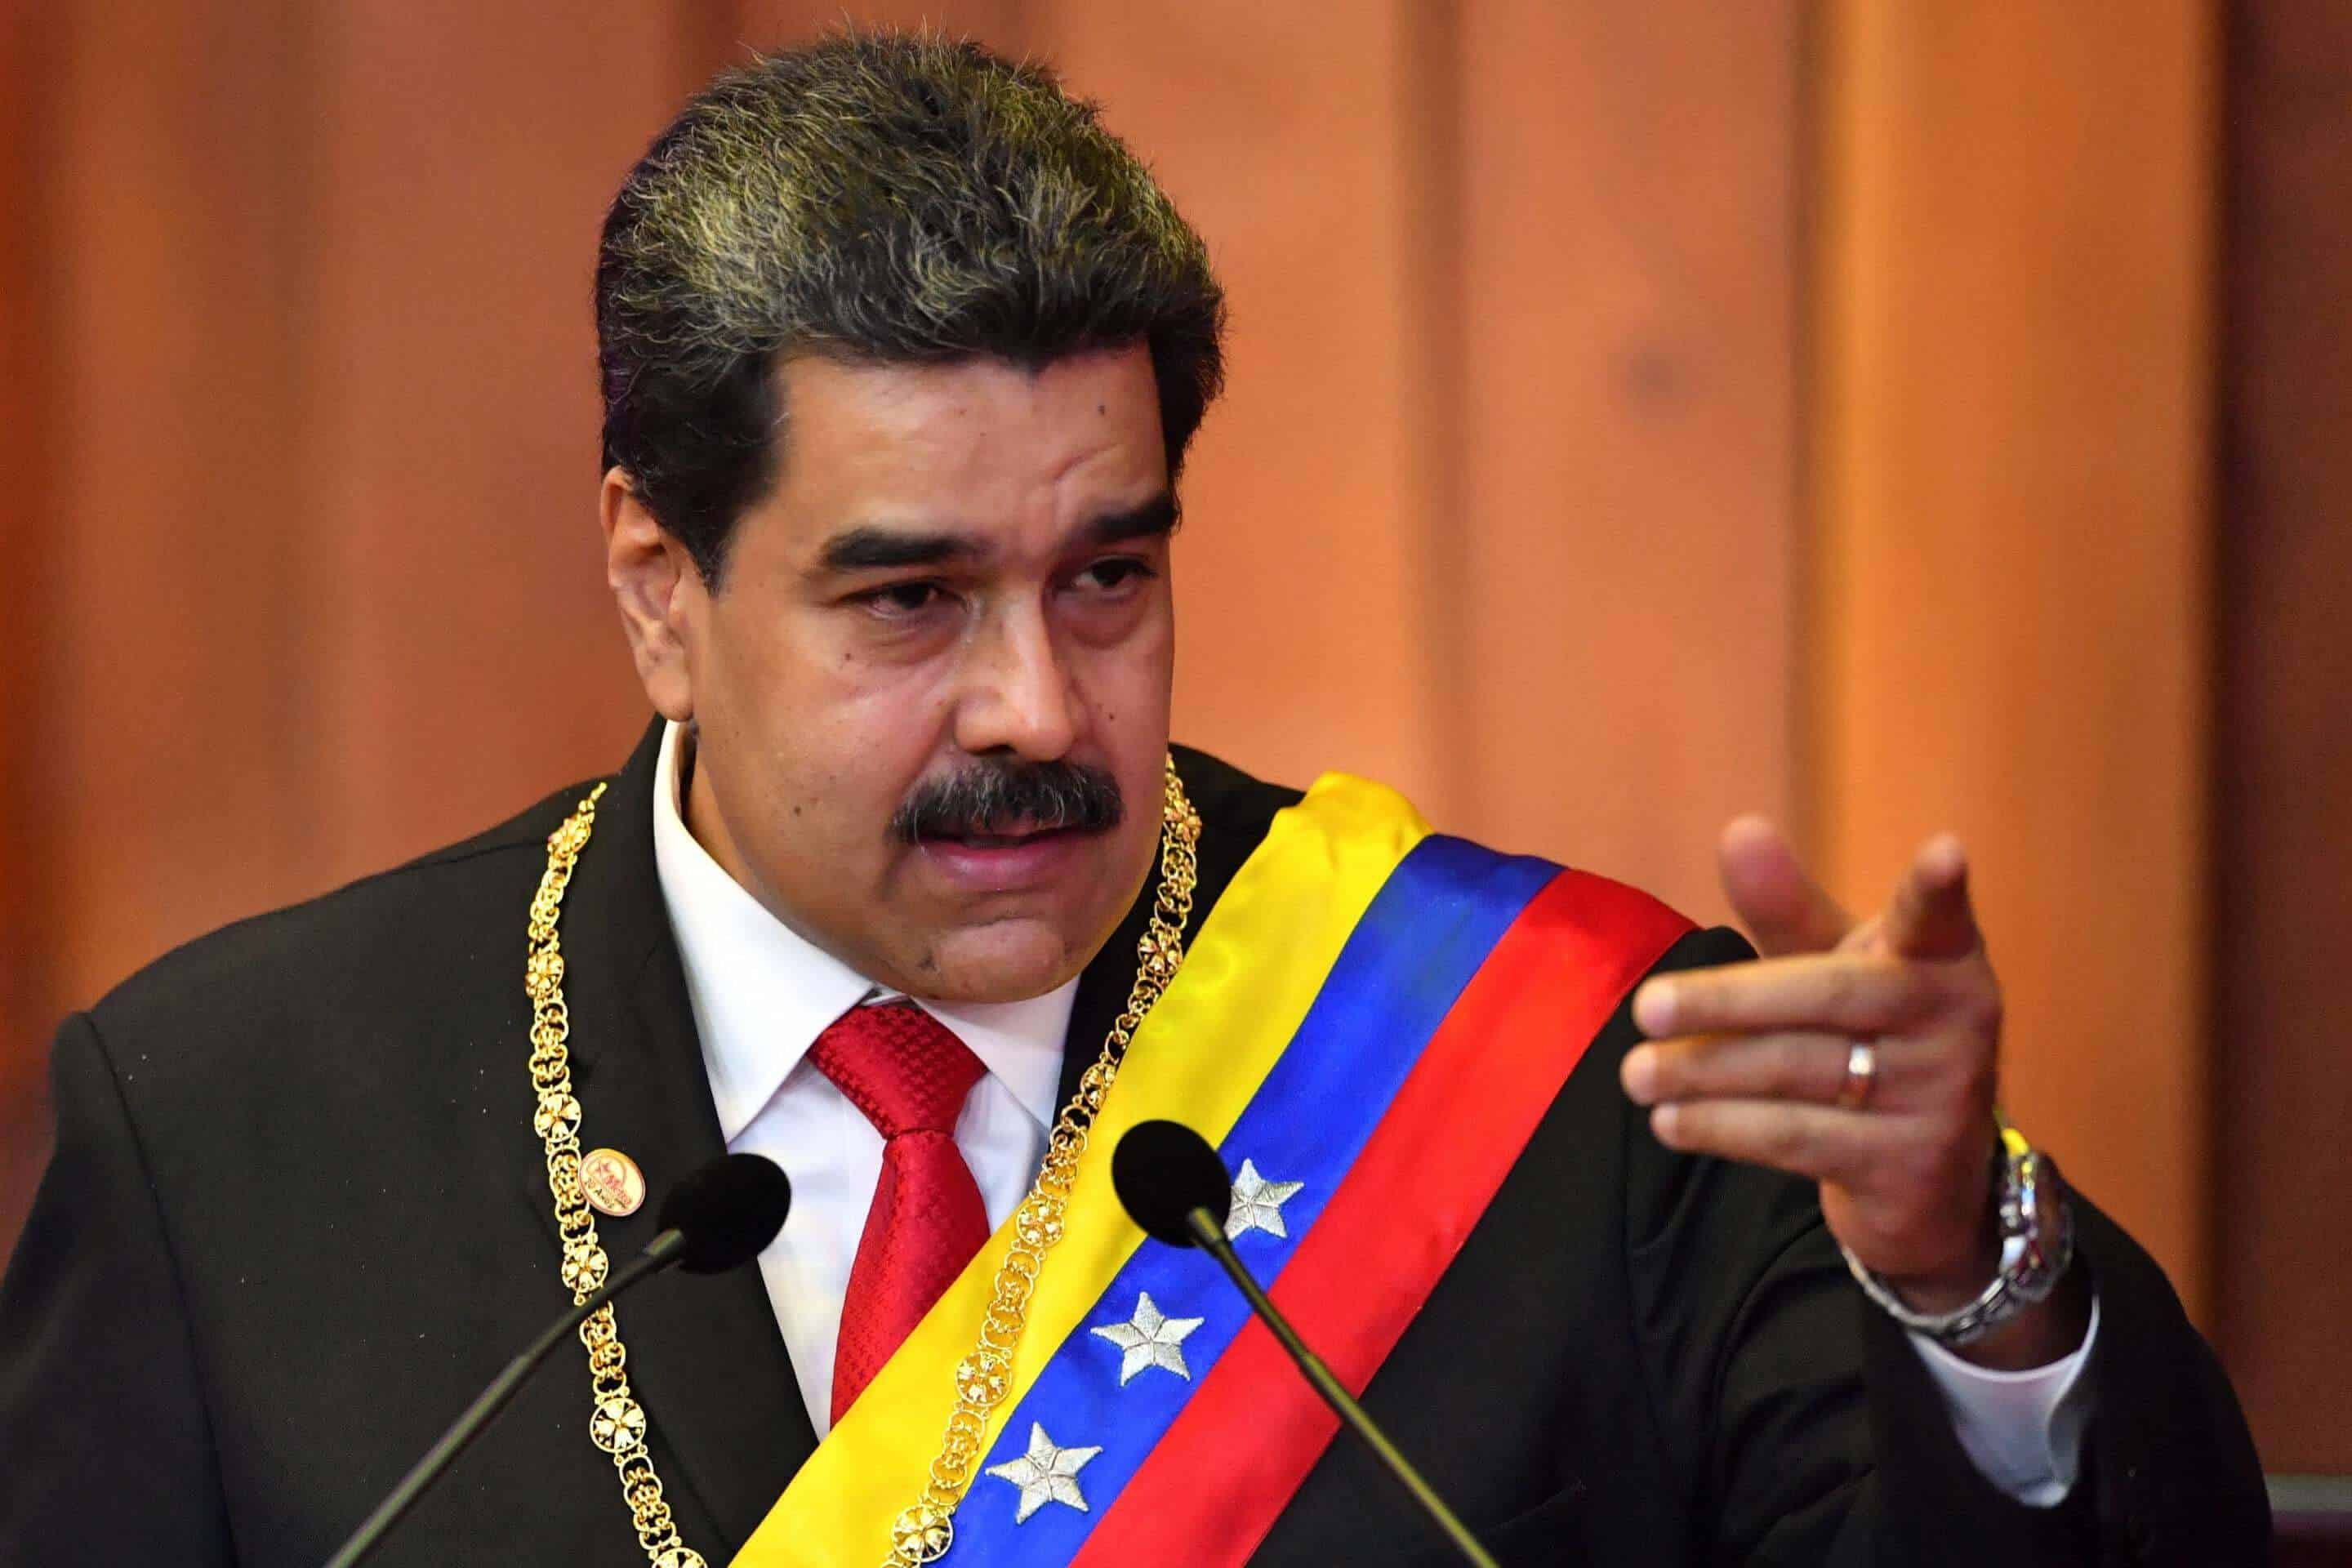 Venezuelan President Nicolas Maduro Won't Give on Petro Anytime Soon